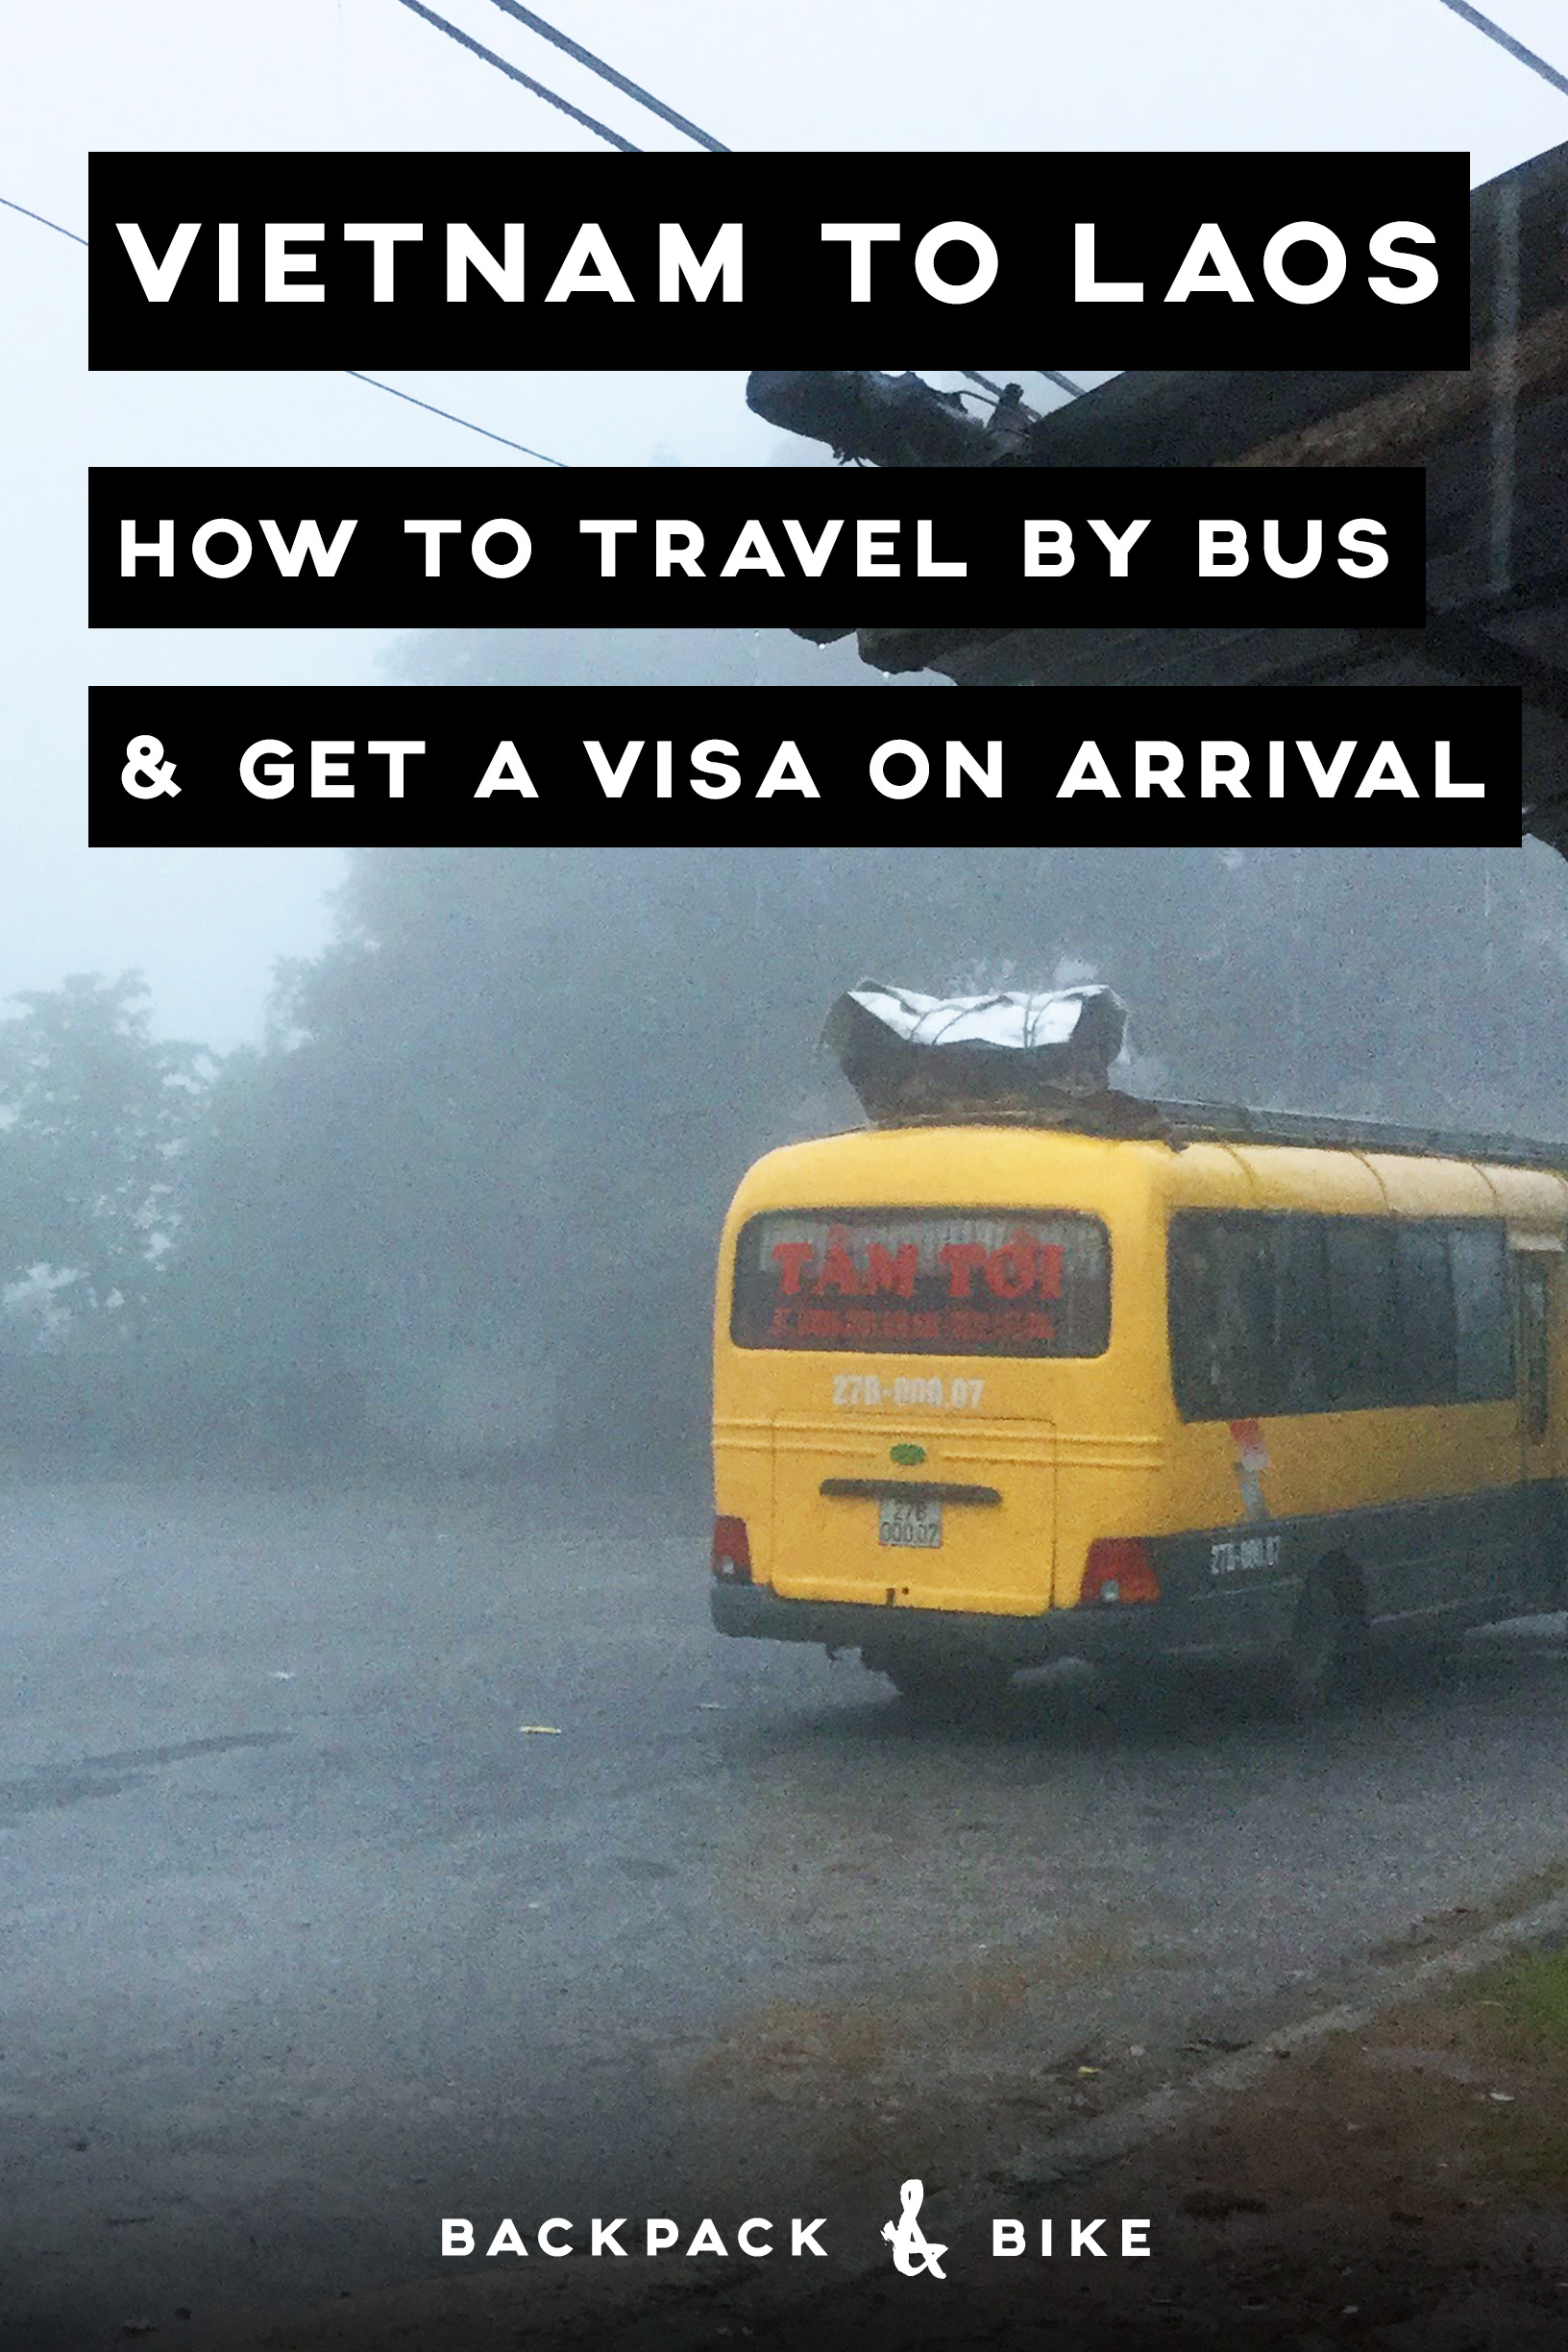 Vietnam to Laos – How to Travel by Bus & Get a Laos Visa on Arrival - Backpack & Bike